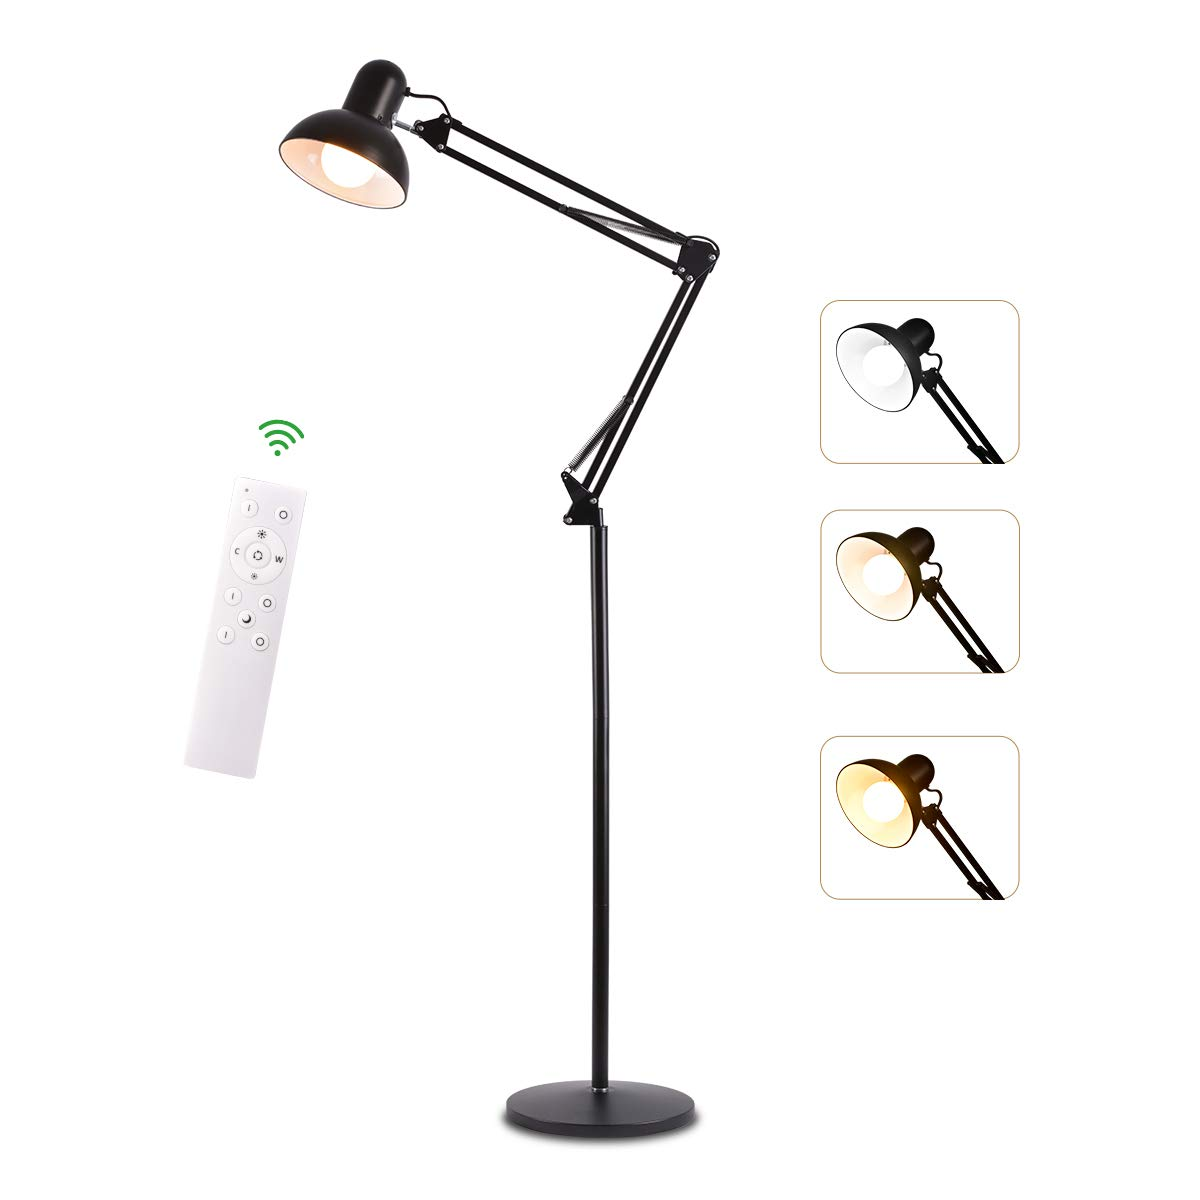 Floor Lamp Reading Light Dimmable 360 Degrees Adjustable Head Lamp Swing Arm Desk Lamp with Remote Control Uplight Heavy Metal Base for Office, Bedroom,Sewing,Living Room,Family Room,Study Room